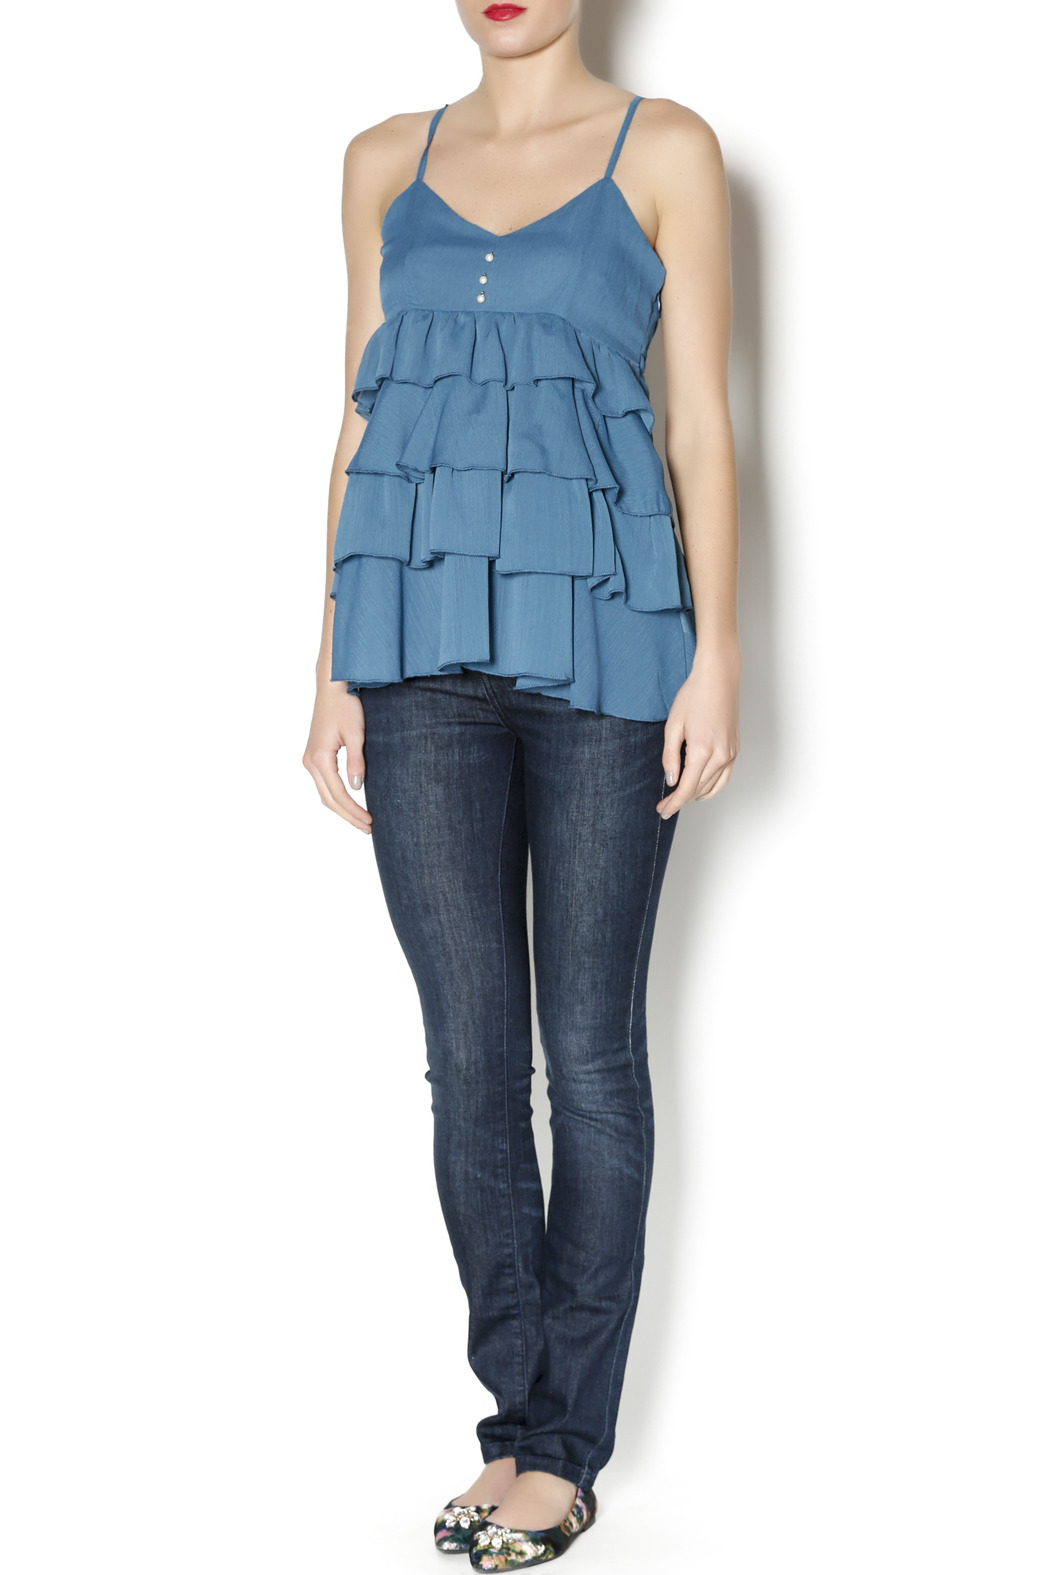 Elise Pearl Ruffle Top - Front Full Image